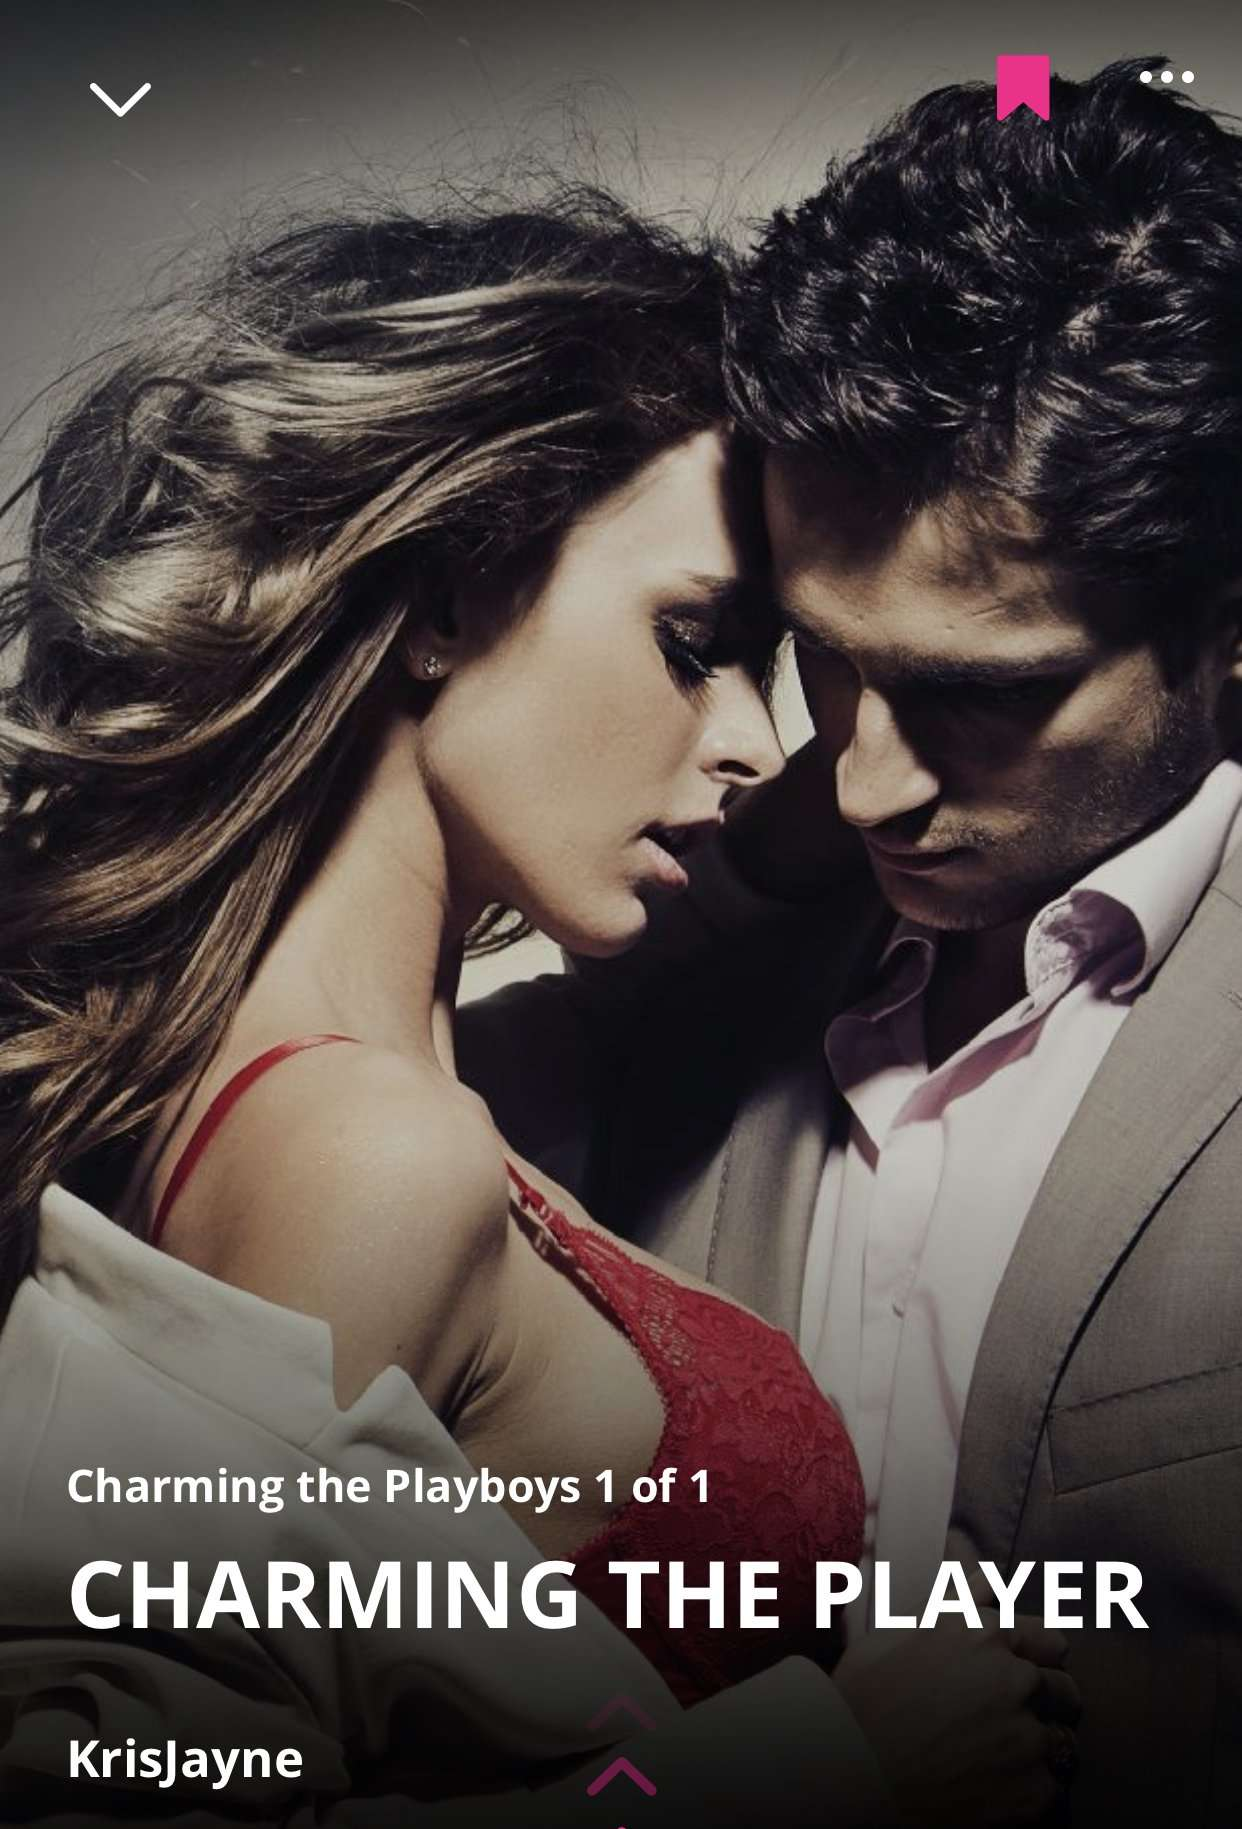 Kris Jayne on Radish with Charming the Playboys